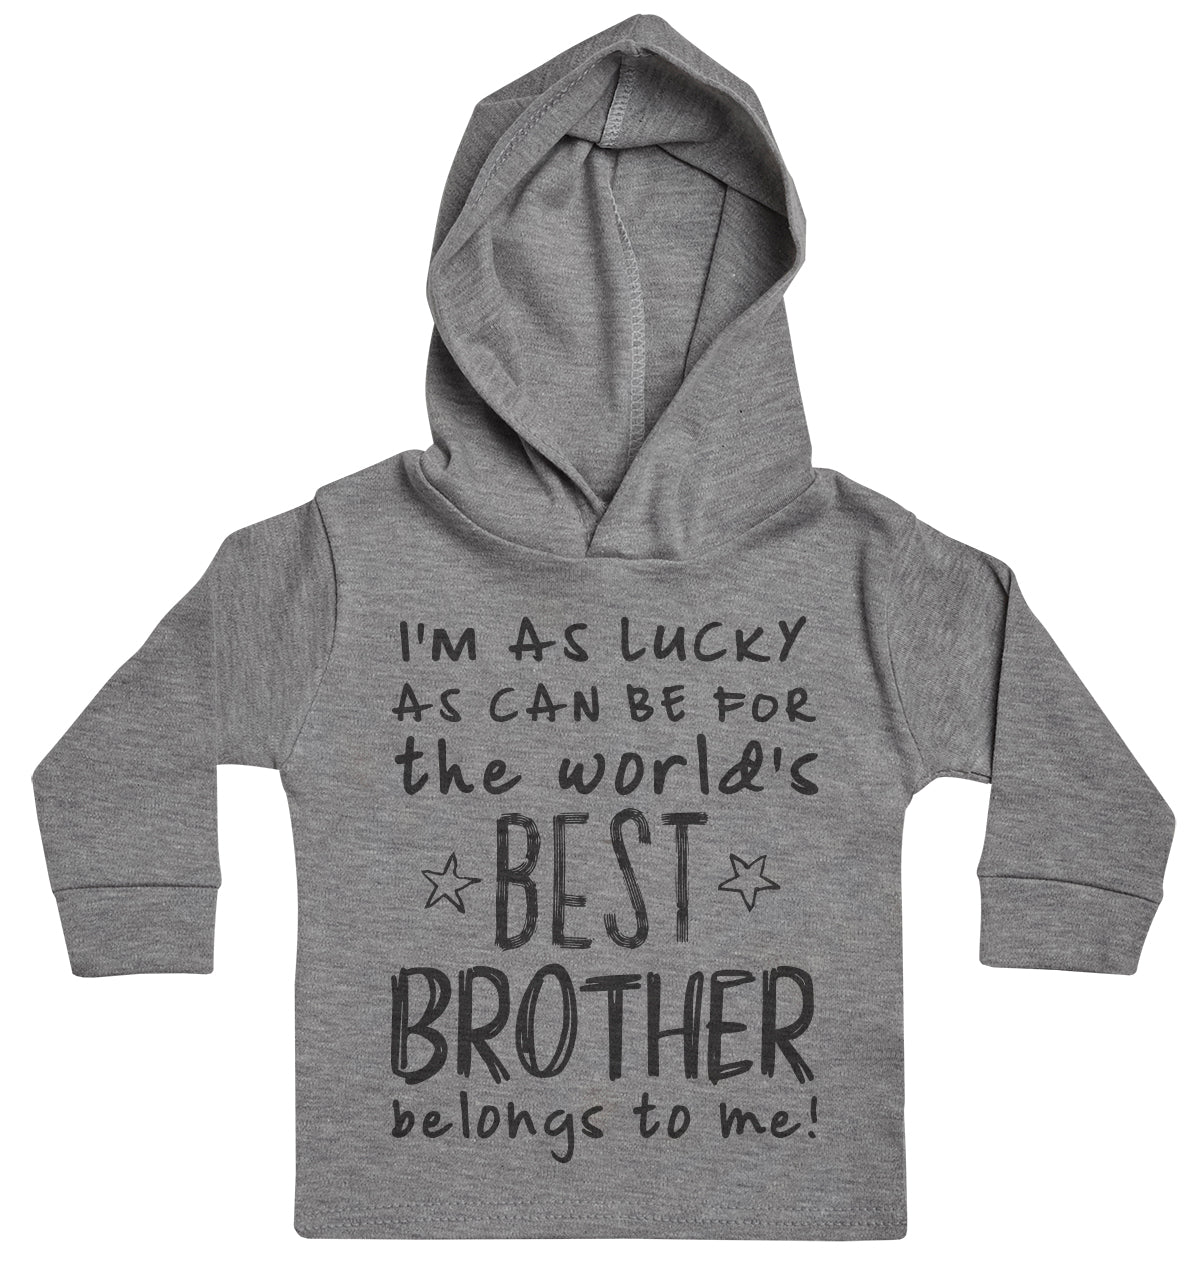 I'm As Lucky As Can Be Best Brother belongs to me! Baby Hoody